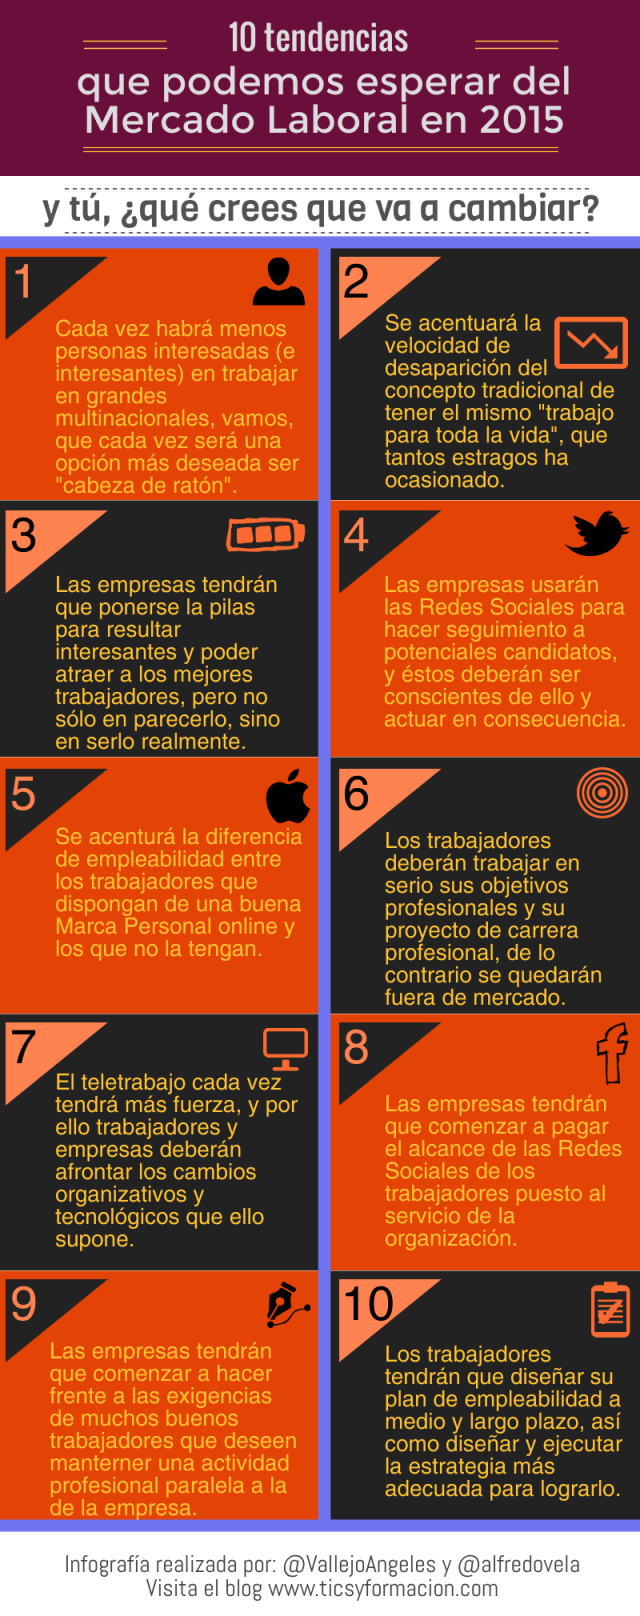 10-tendencias-mercado-laboral-2015-infografia